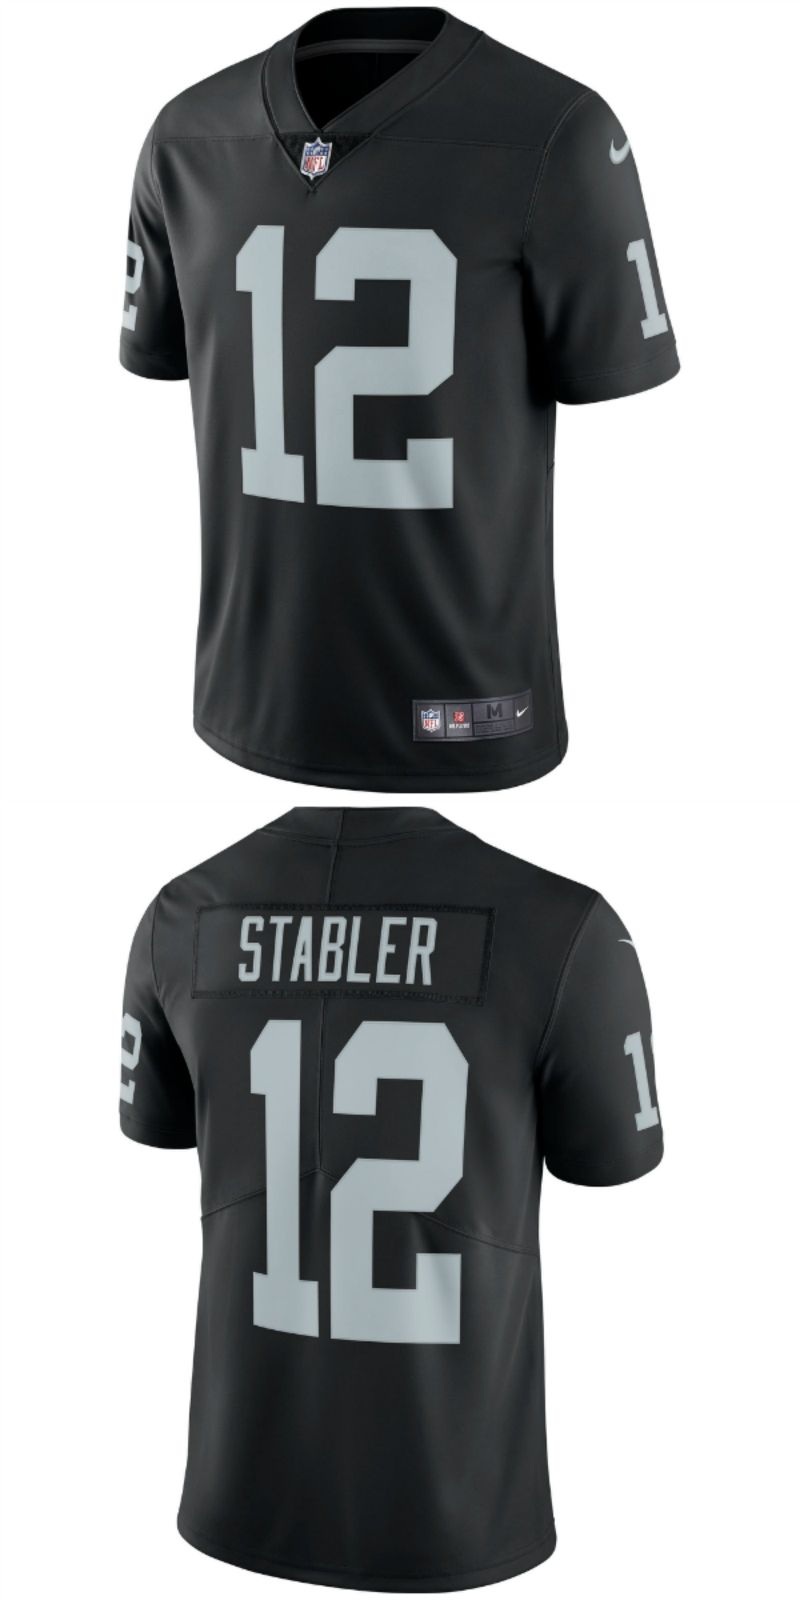 Up To 70 Off Ken Stabler Oakland Raiders Nike Retired Player Vapor Untouchable Limited Throwback Jersey Black Oakland Nfl Oakland Raiders Jerseys Oakla